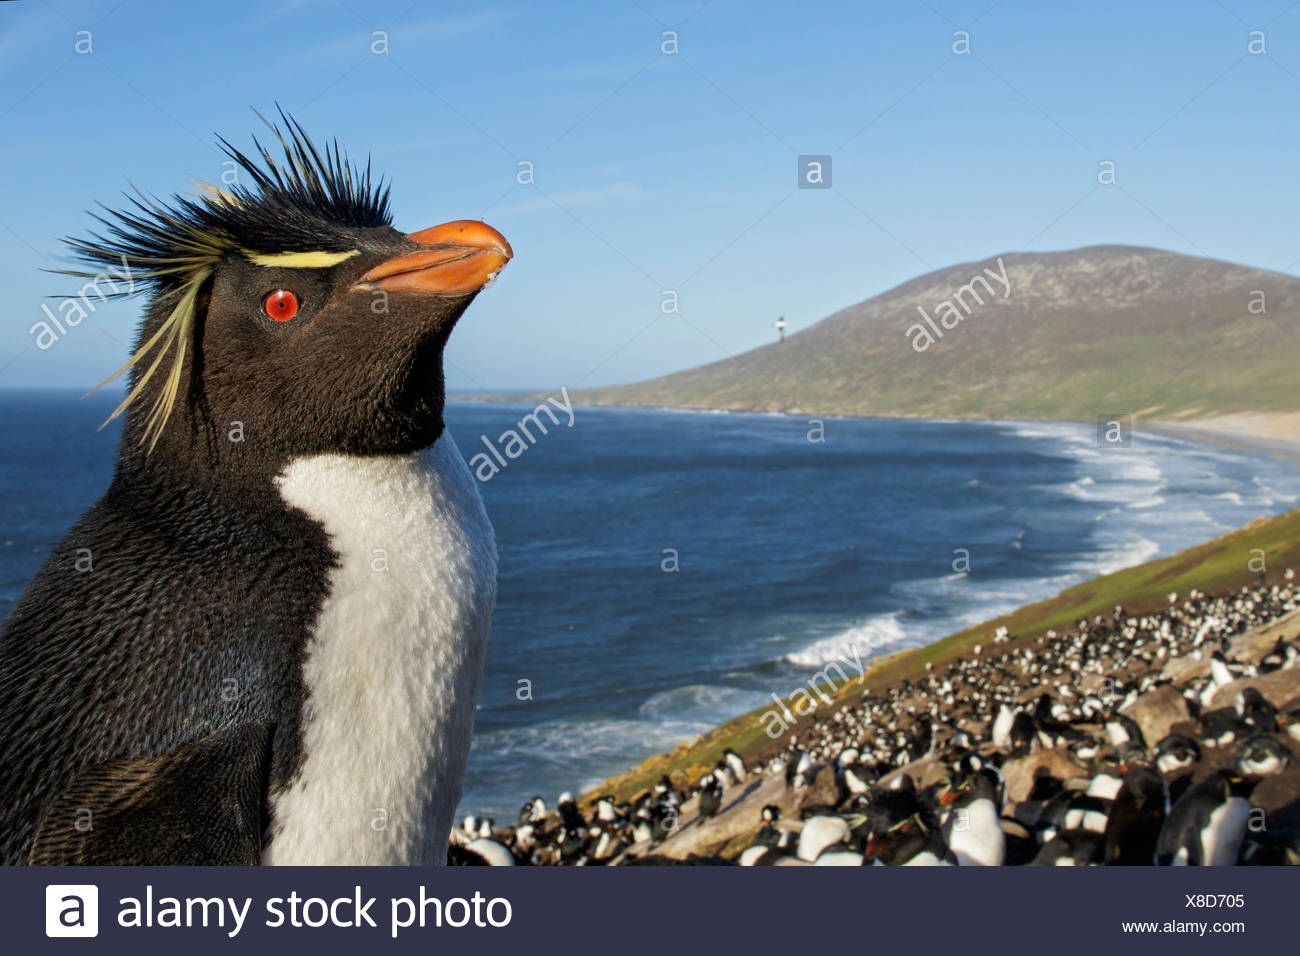 Rockhopper Penguin (Eudyptes chrysocome) at a nesting colony in the Falkland Islands. - Stock Image